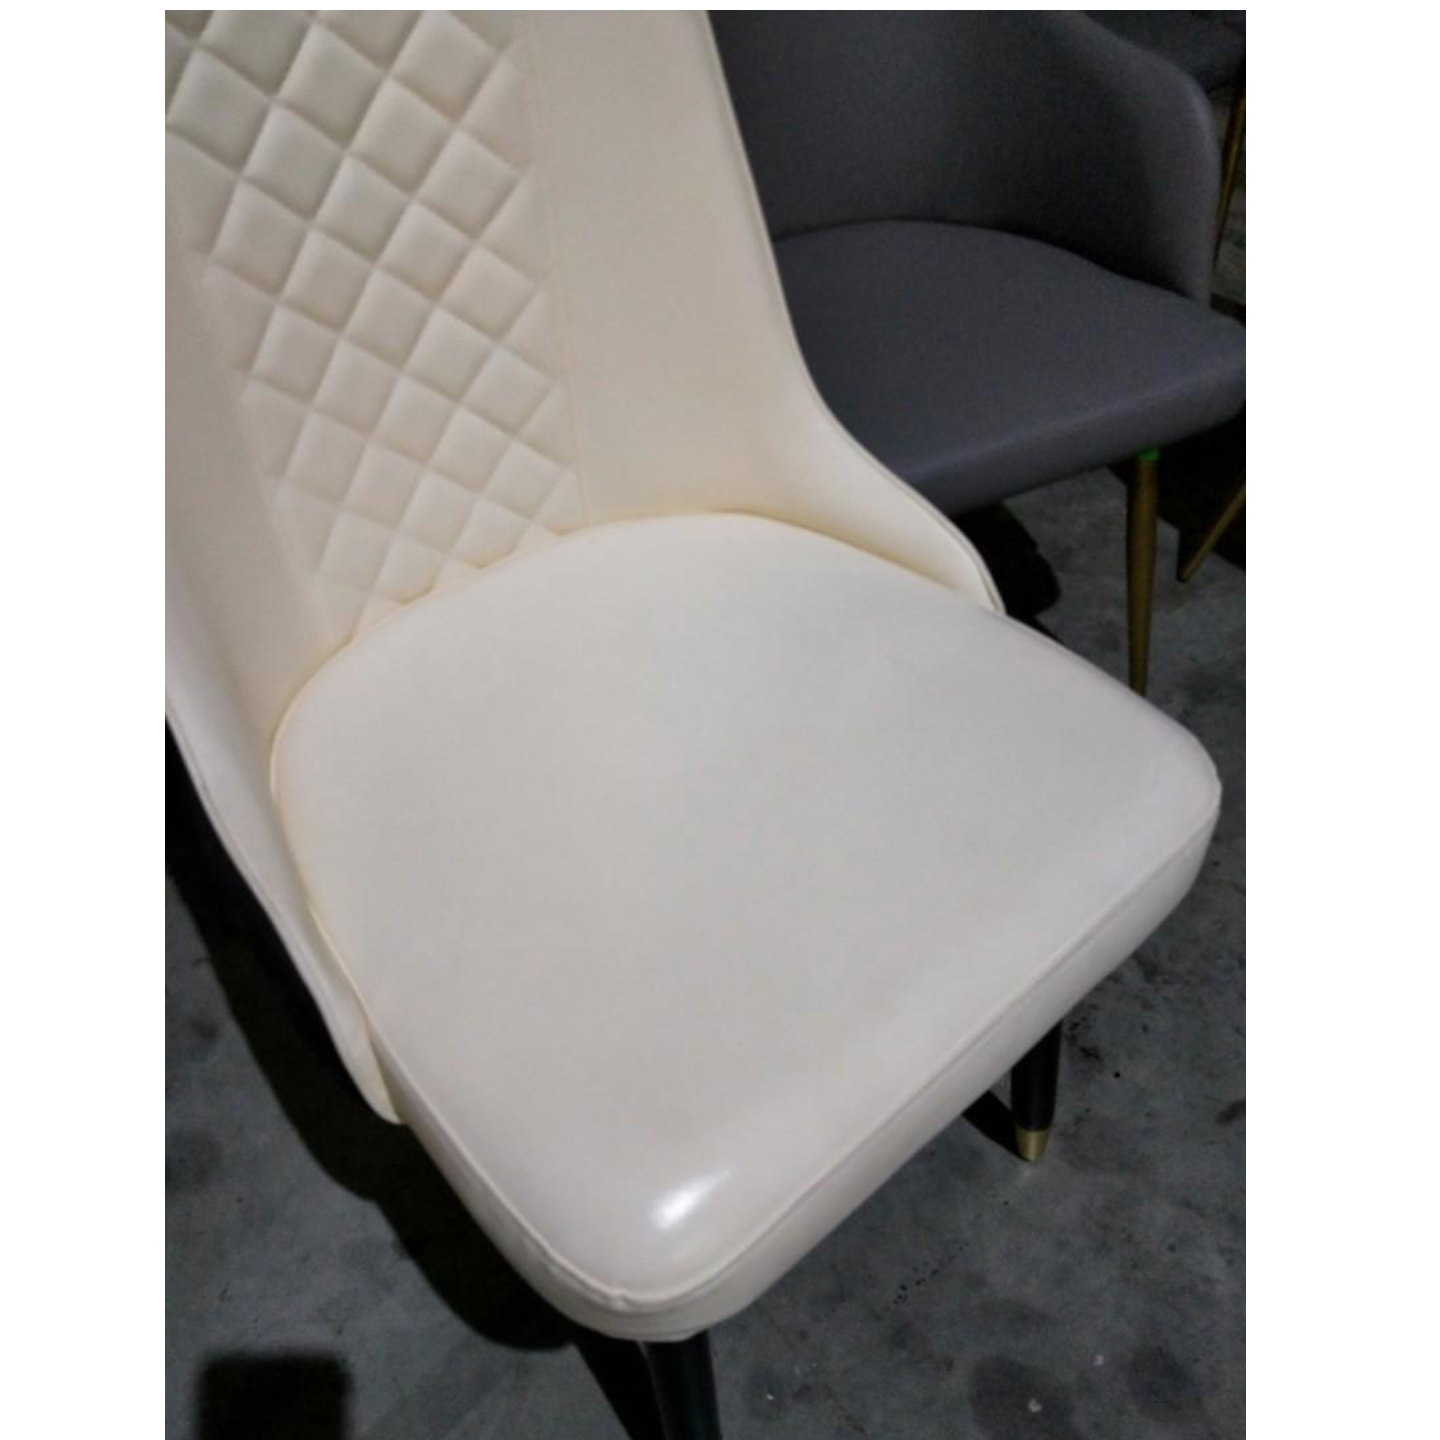 4 x LIVERA Modern Faux Leather Dining Chair